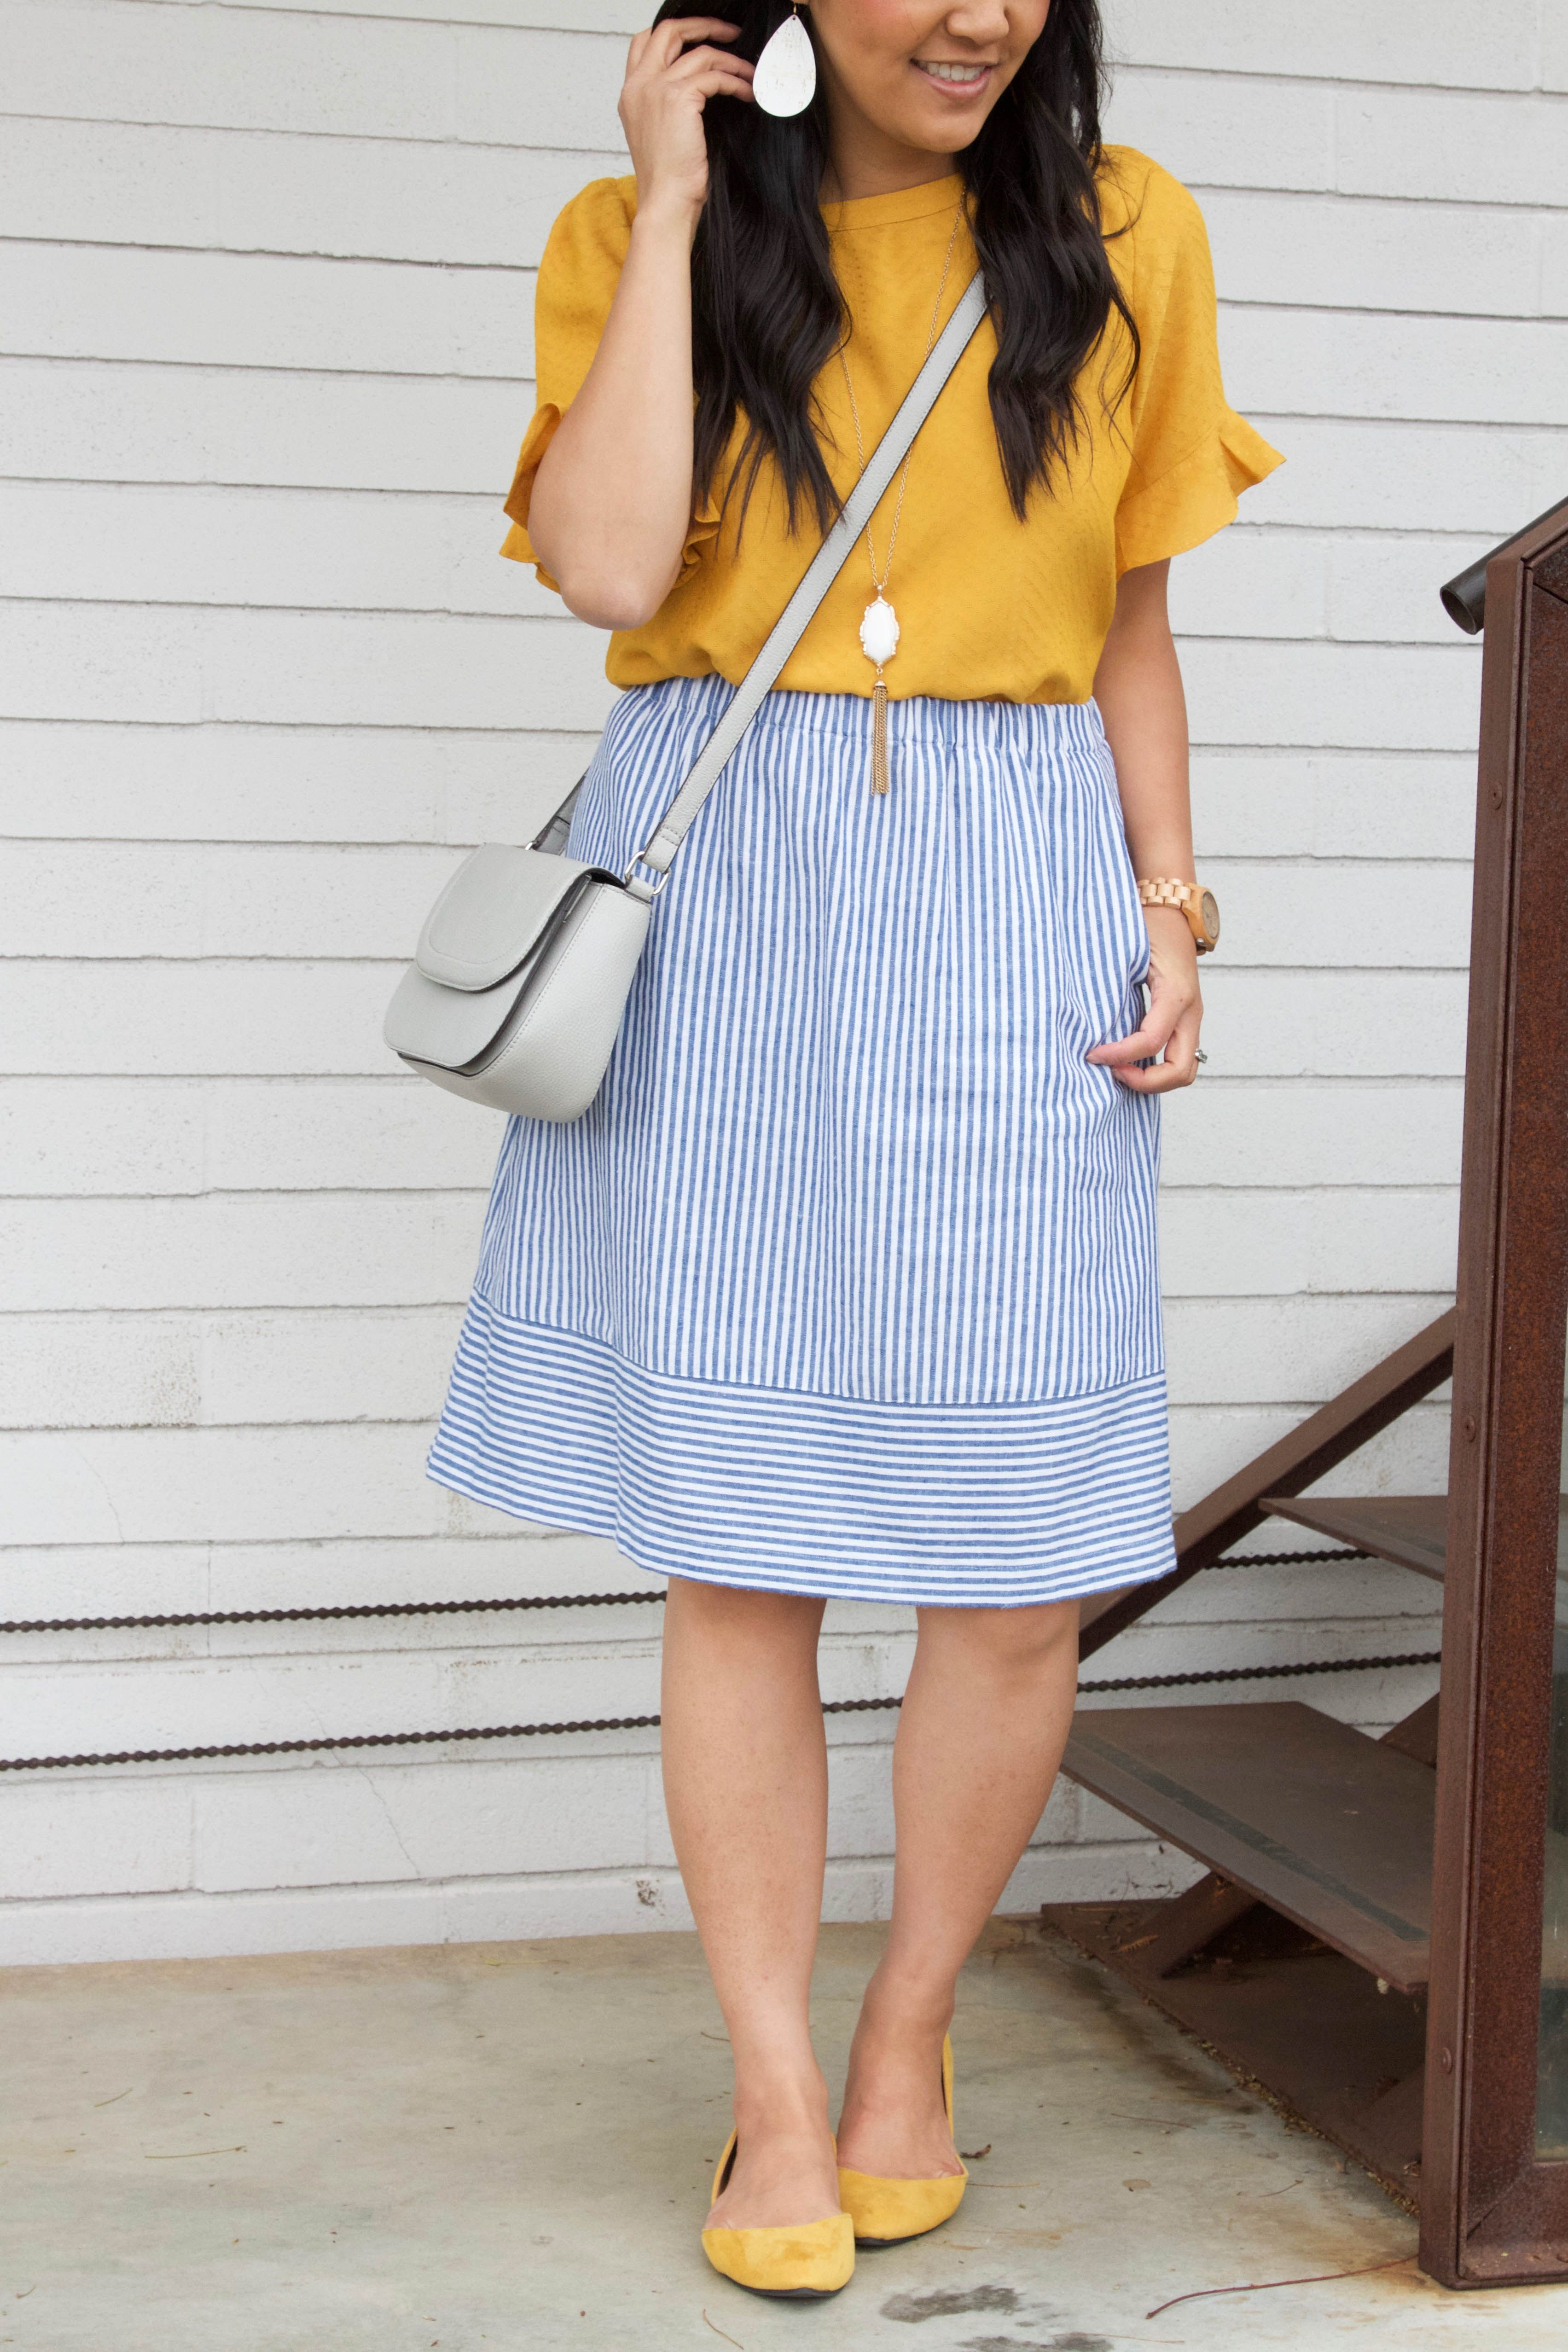 879a57306 Blue Skirt + Yellow Blouse + White Statement Necklace + Earrings + Flats